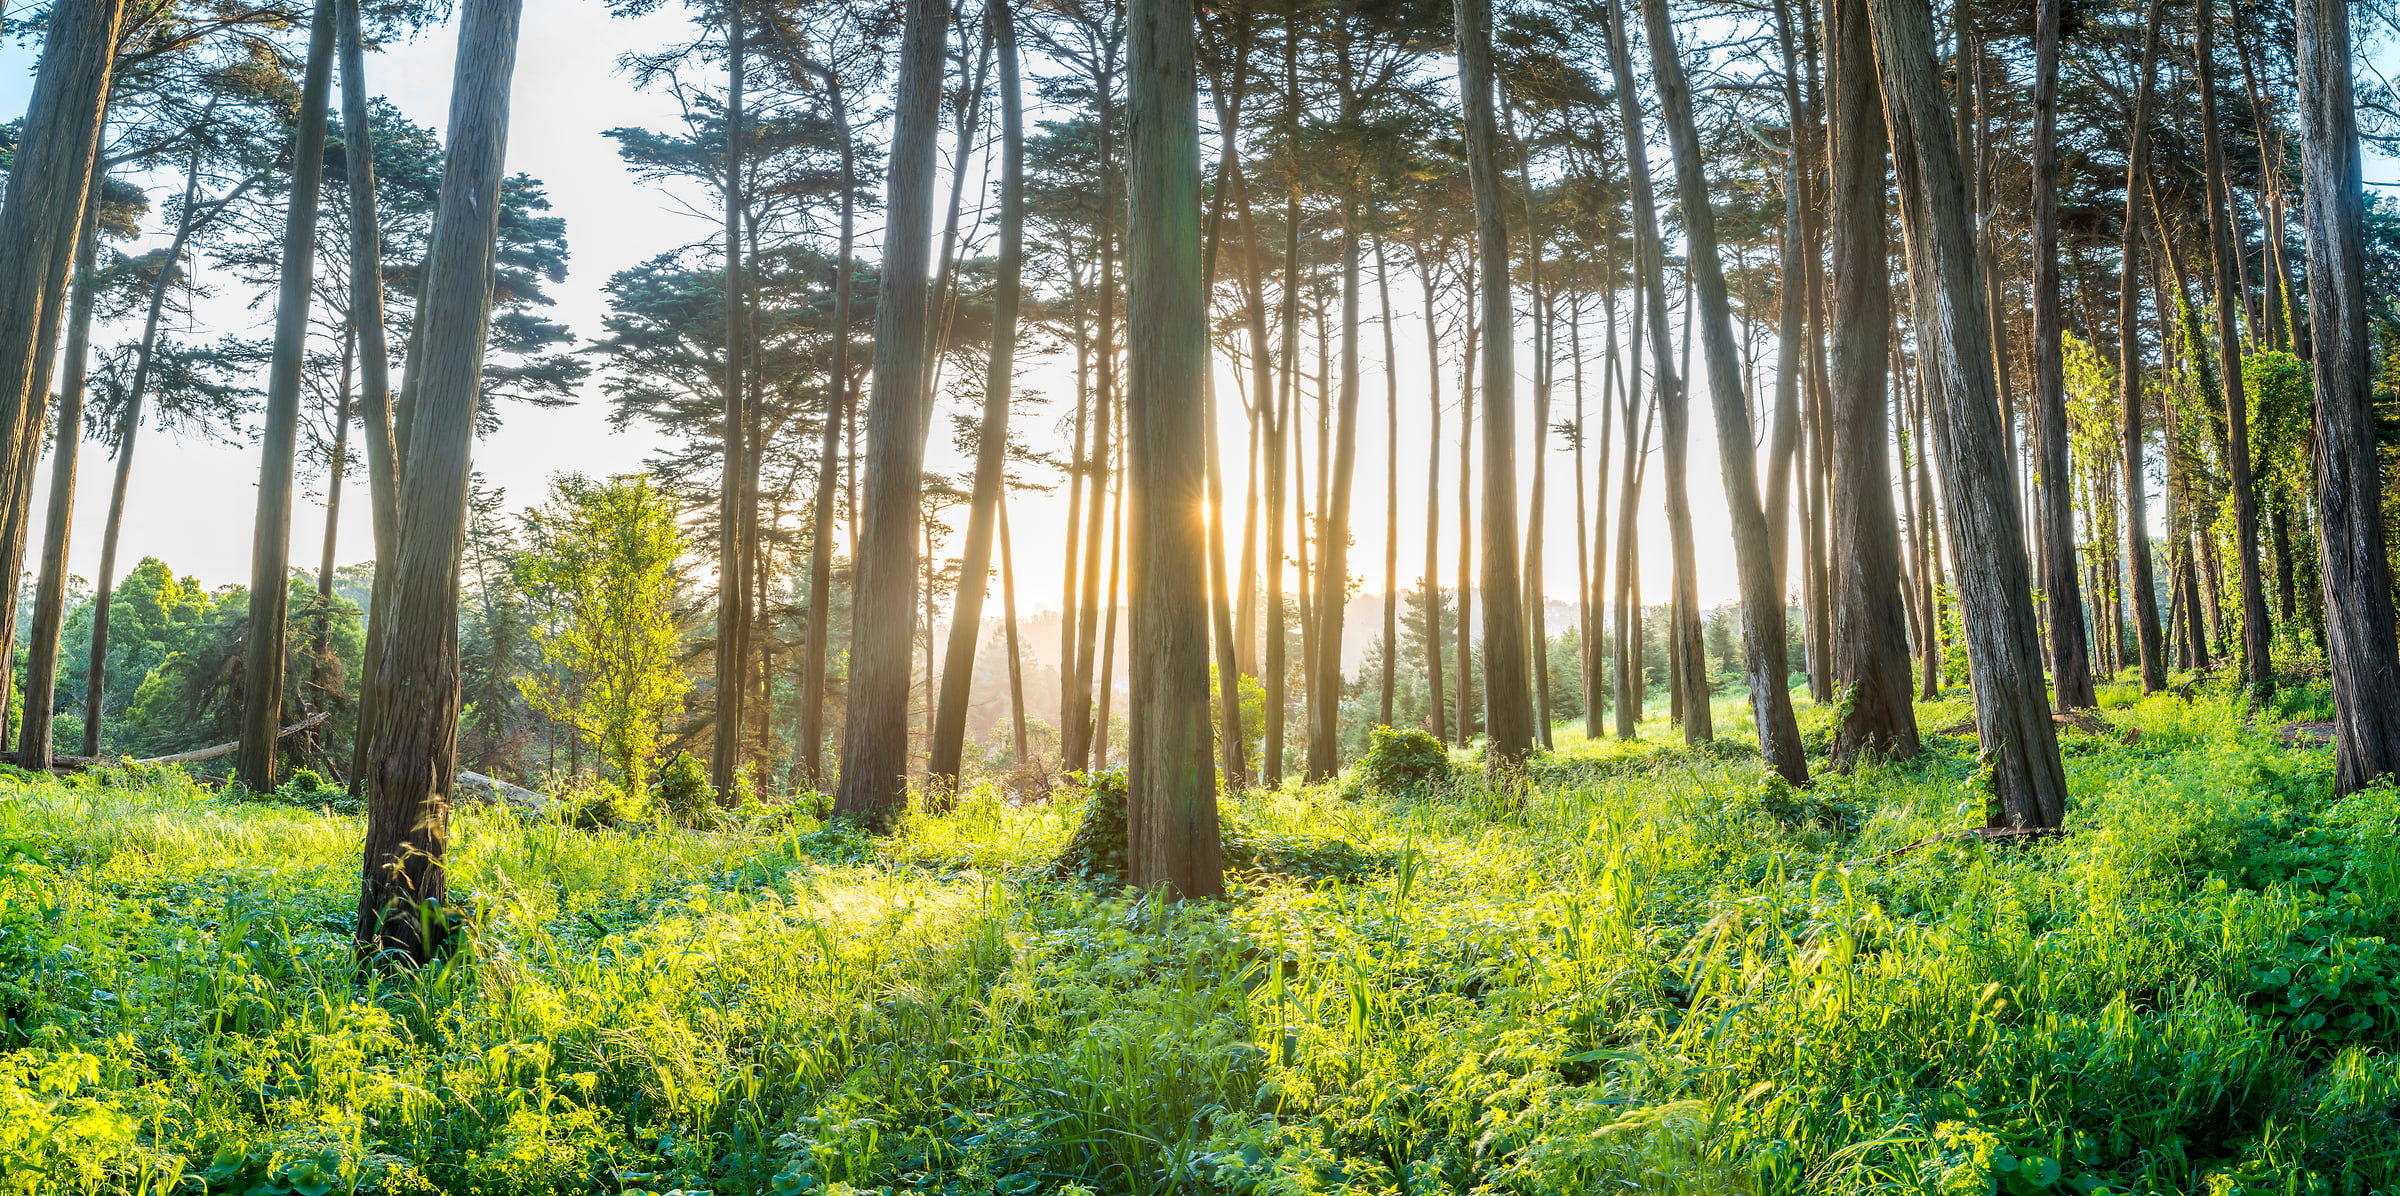 285 megapixels! A very high resolution, large-format VAST photo print of trees in the Presidio of San Francisco at sunrise; fine art nature photo created by Justin Katz in California